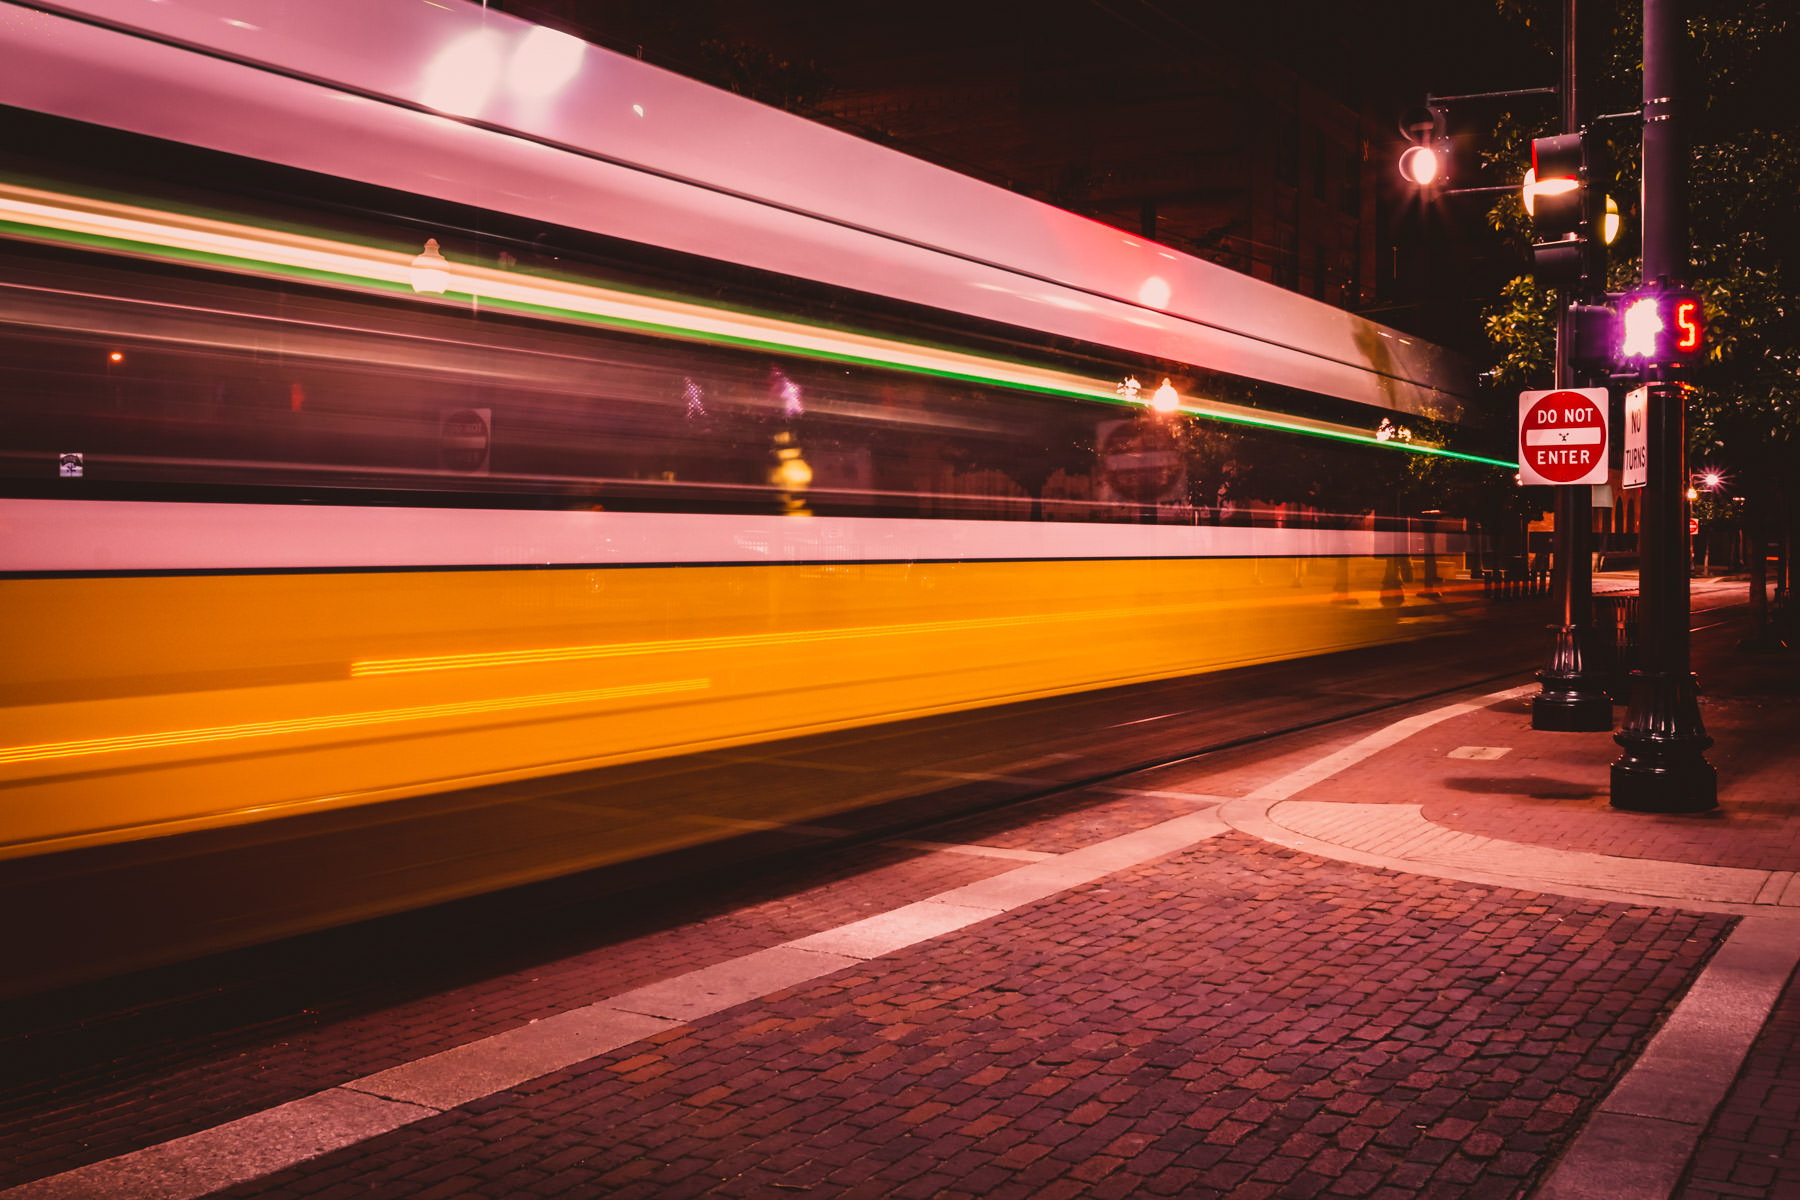 A long exposure shot of a DART Light Rail train speeding through Dallas' West End district.